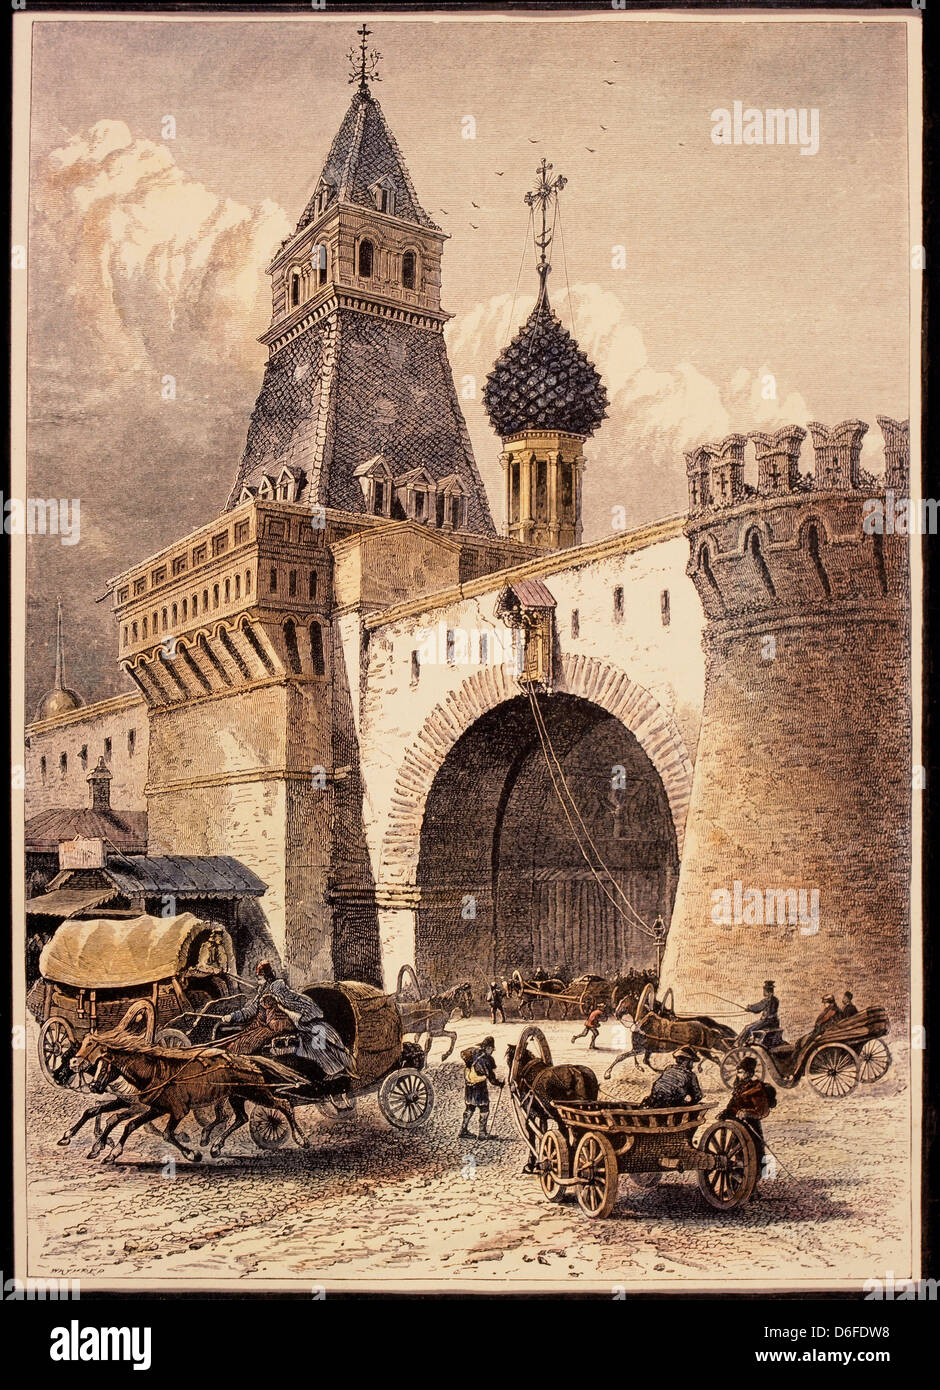 Nikolsky Gate, Moscow, Hand-Colored Engraving Circa 1875 - Stock Image